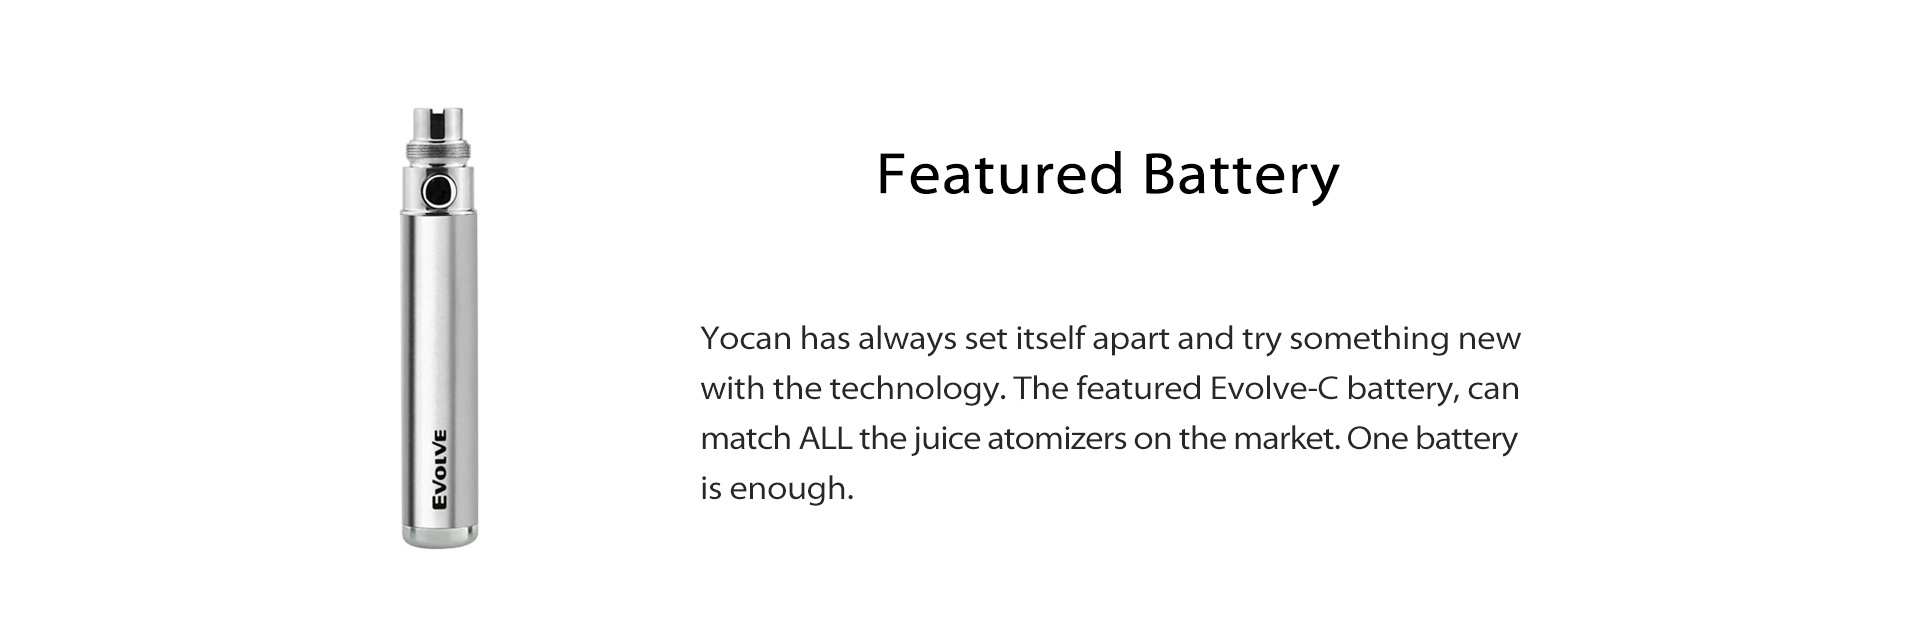 Yocan Evolve C Wax Oil Vaporizer Pen kit features a 650mAh battery